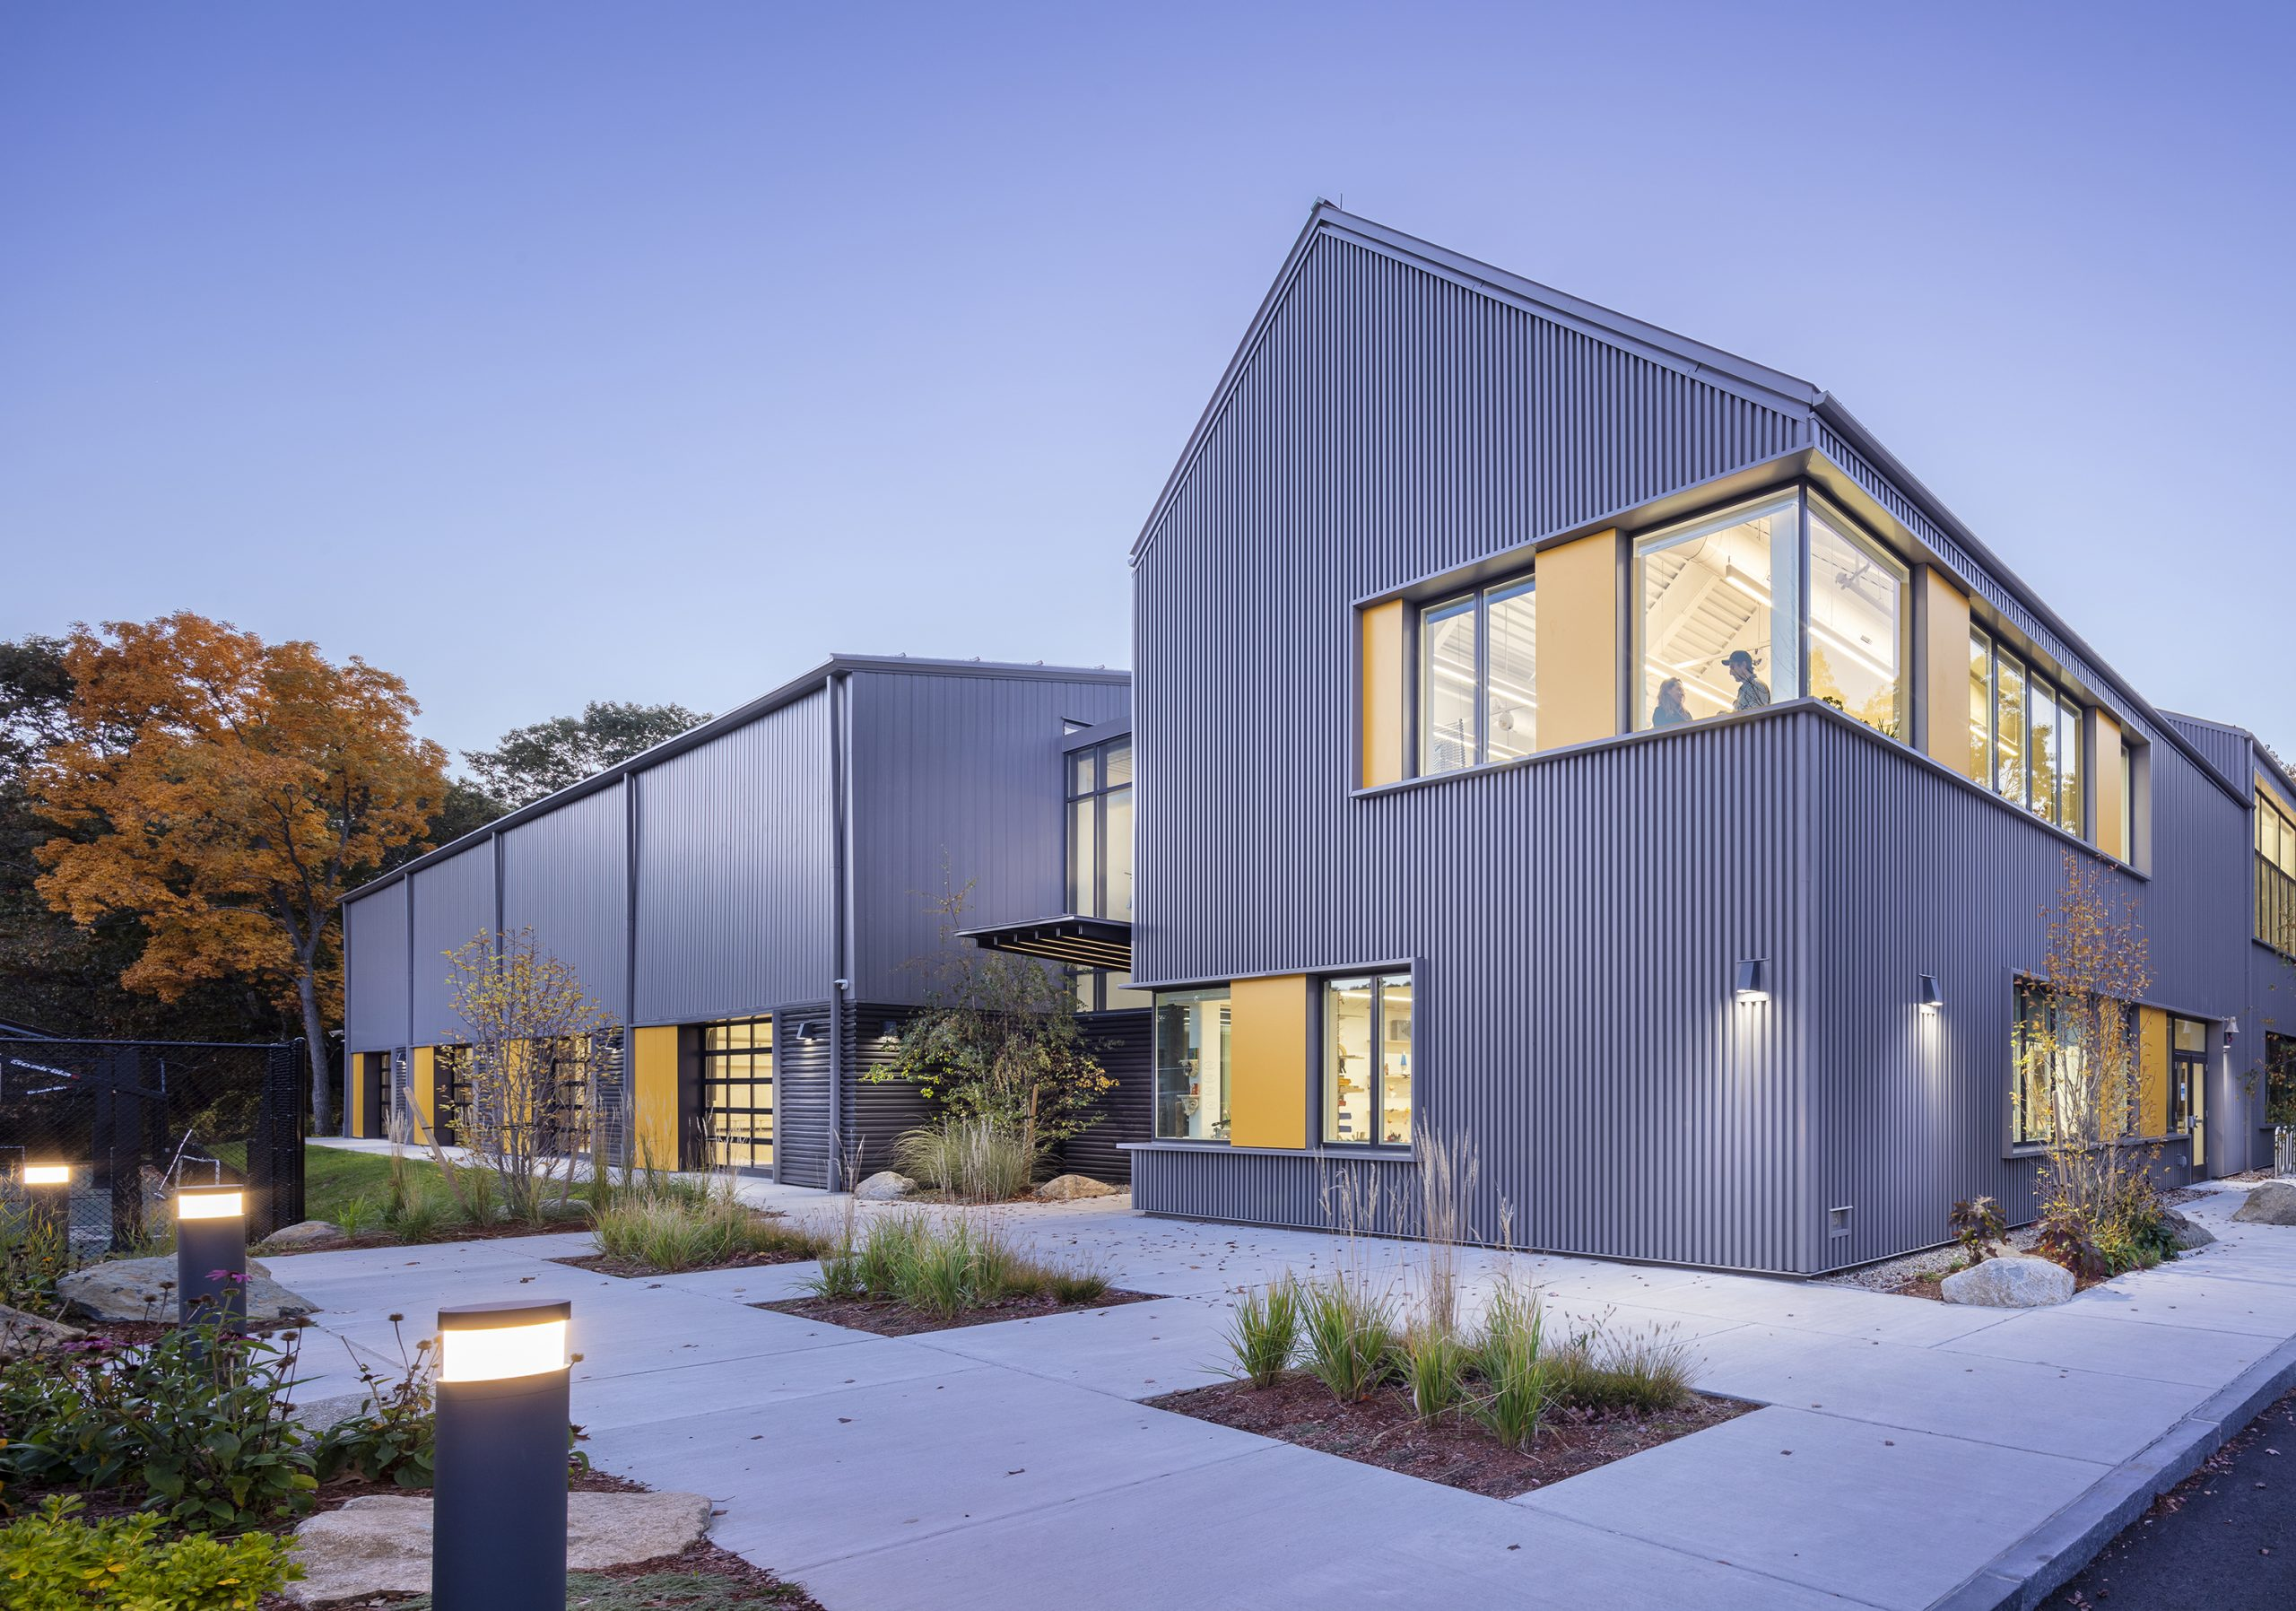 Belmont Day School Barn wins 2021 AIA Education Facility Design Award of Excellence!